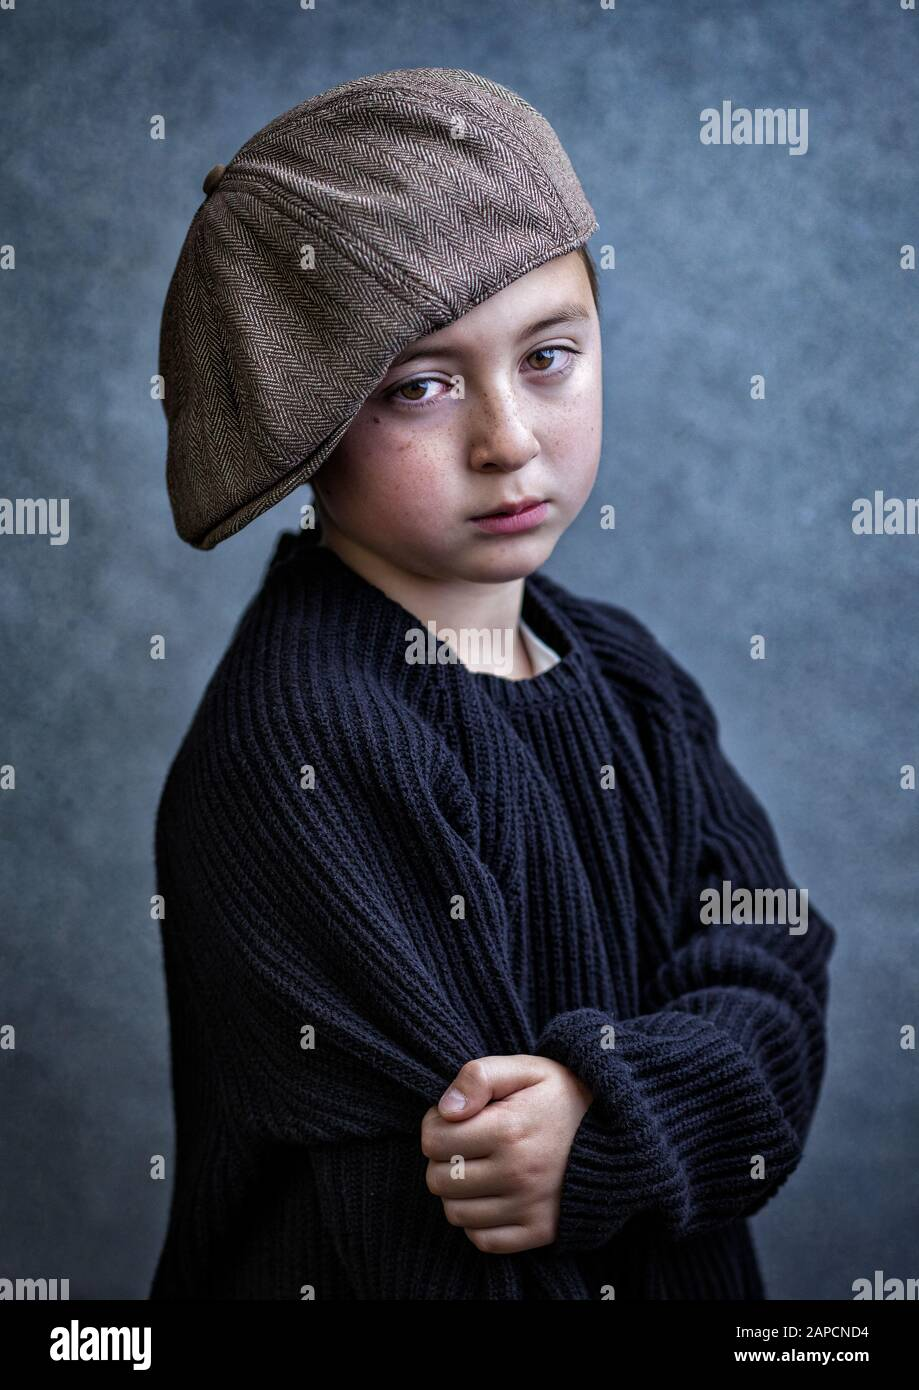 Handsome multi-racial Asian Caucasian little juvenile delinquent boy wearing a black knit wool sweater and a brown tweed newsboy cap our gang Stock Photo